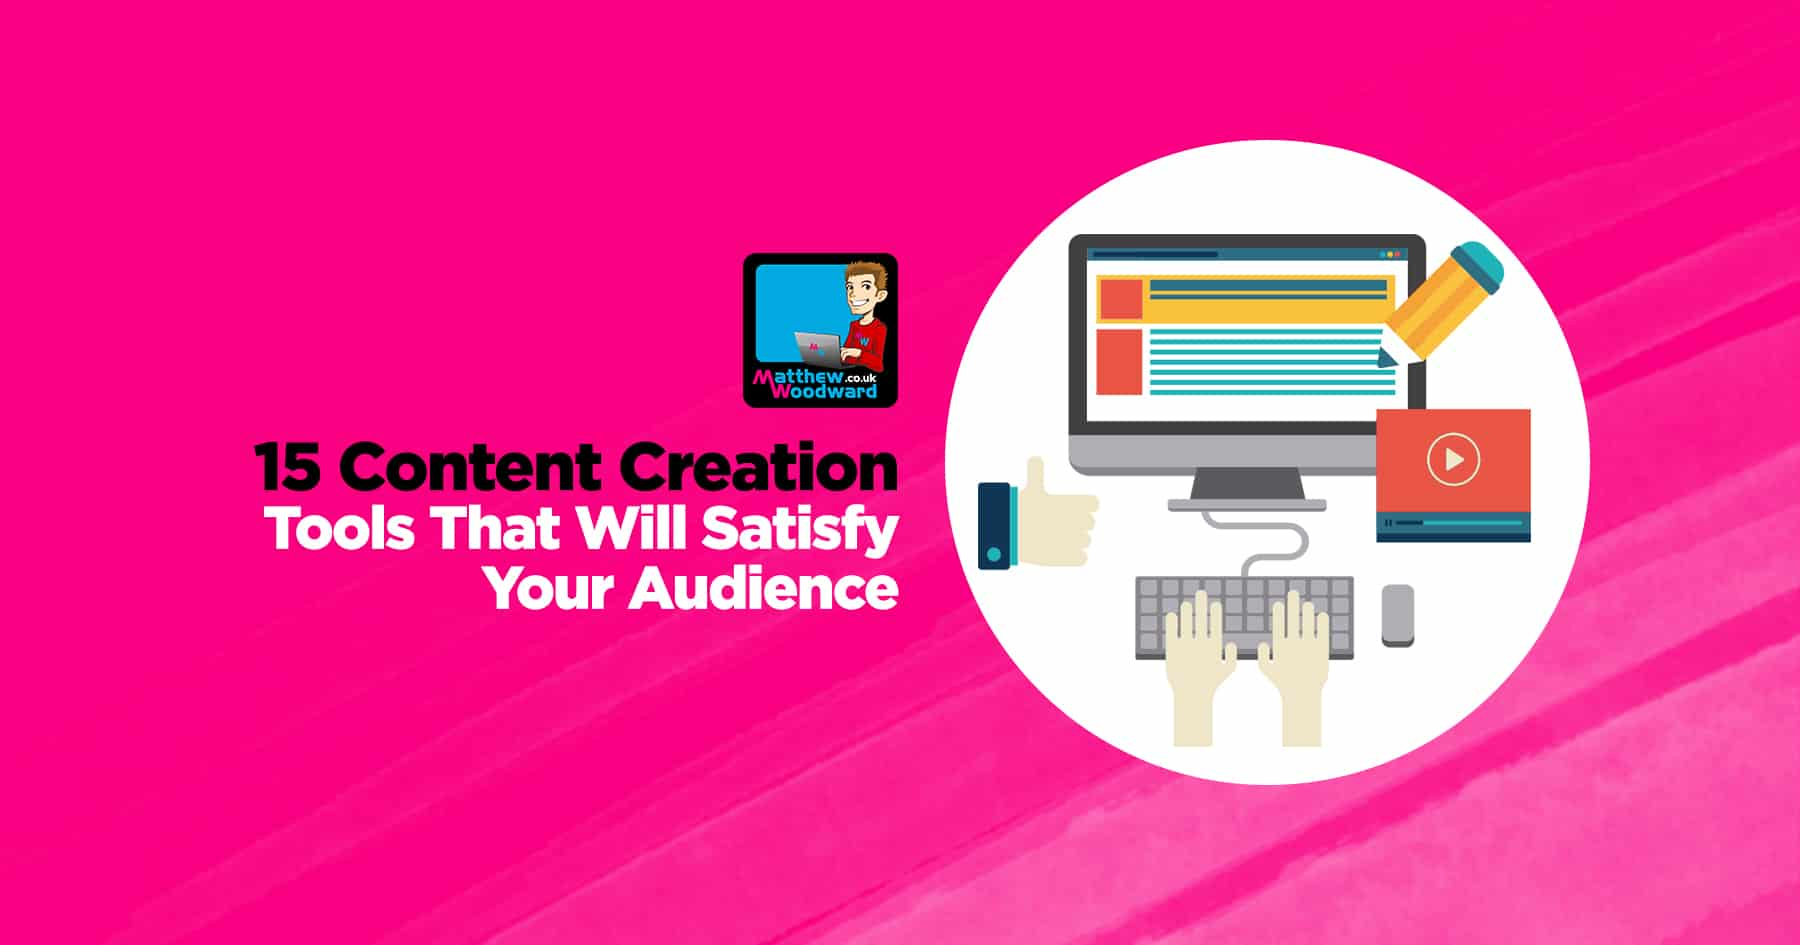 15 Content Creation Tools That Will Satisfy Your Audience